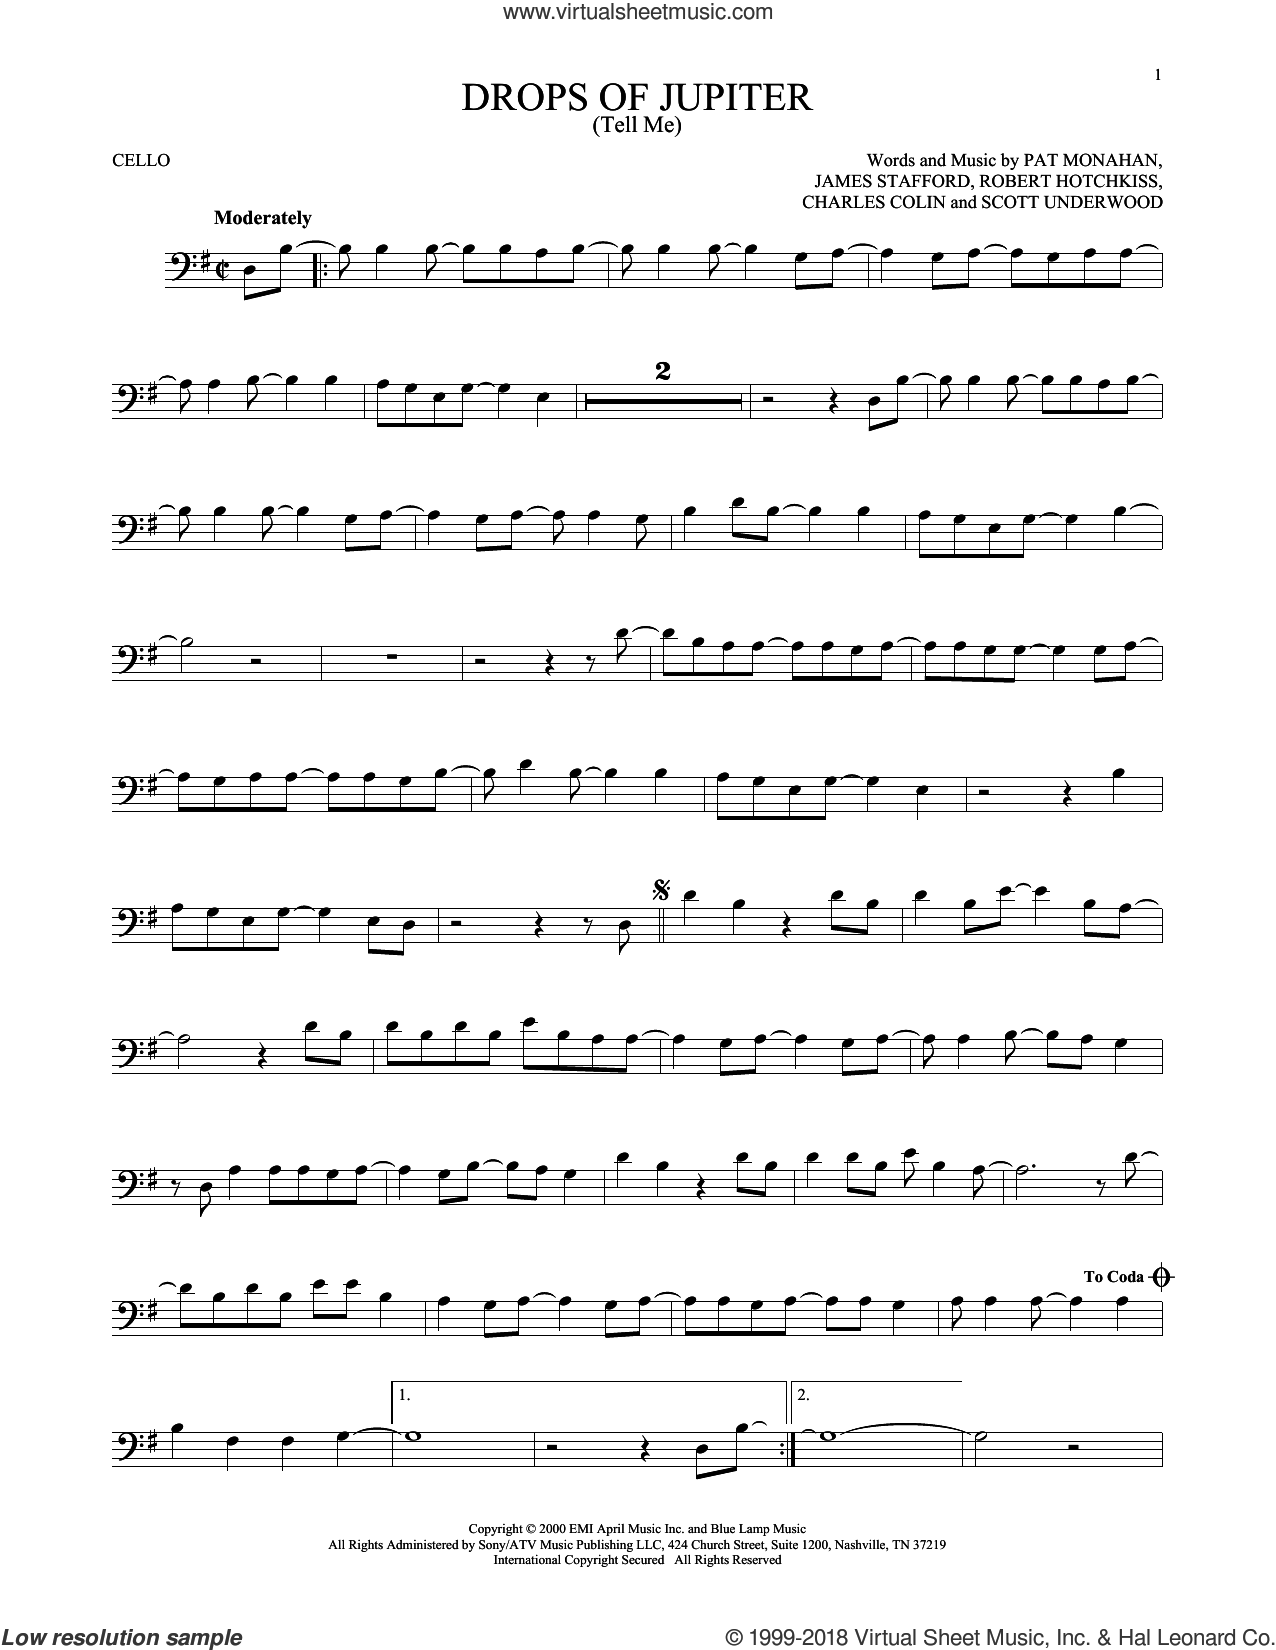 Drops Of Jupiter (Tell Me) sheet music for cello solo by Scott Underwood, Train and Pat Monahan. Score Image Preview.